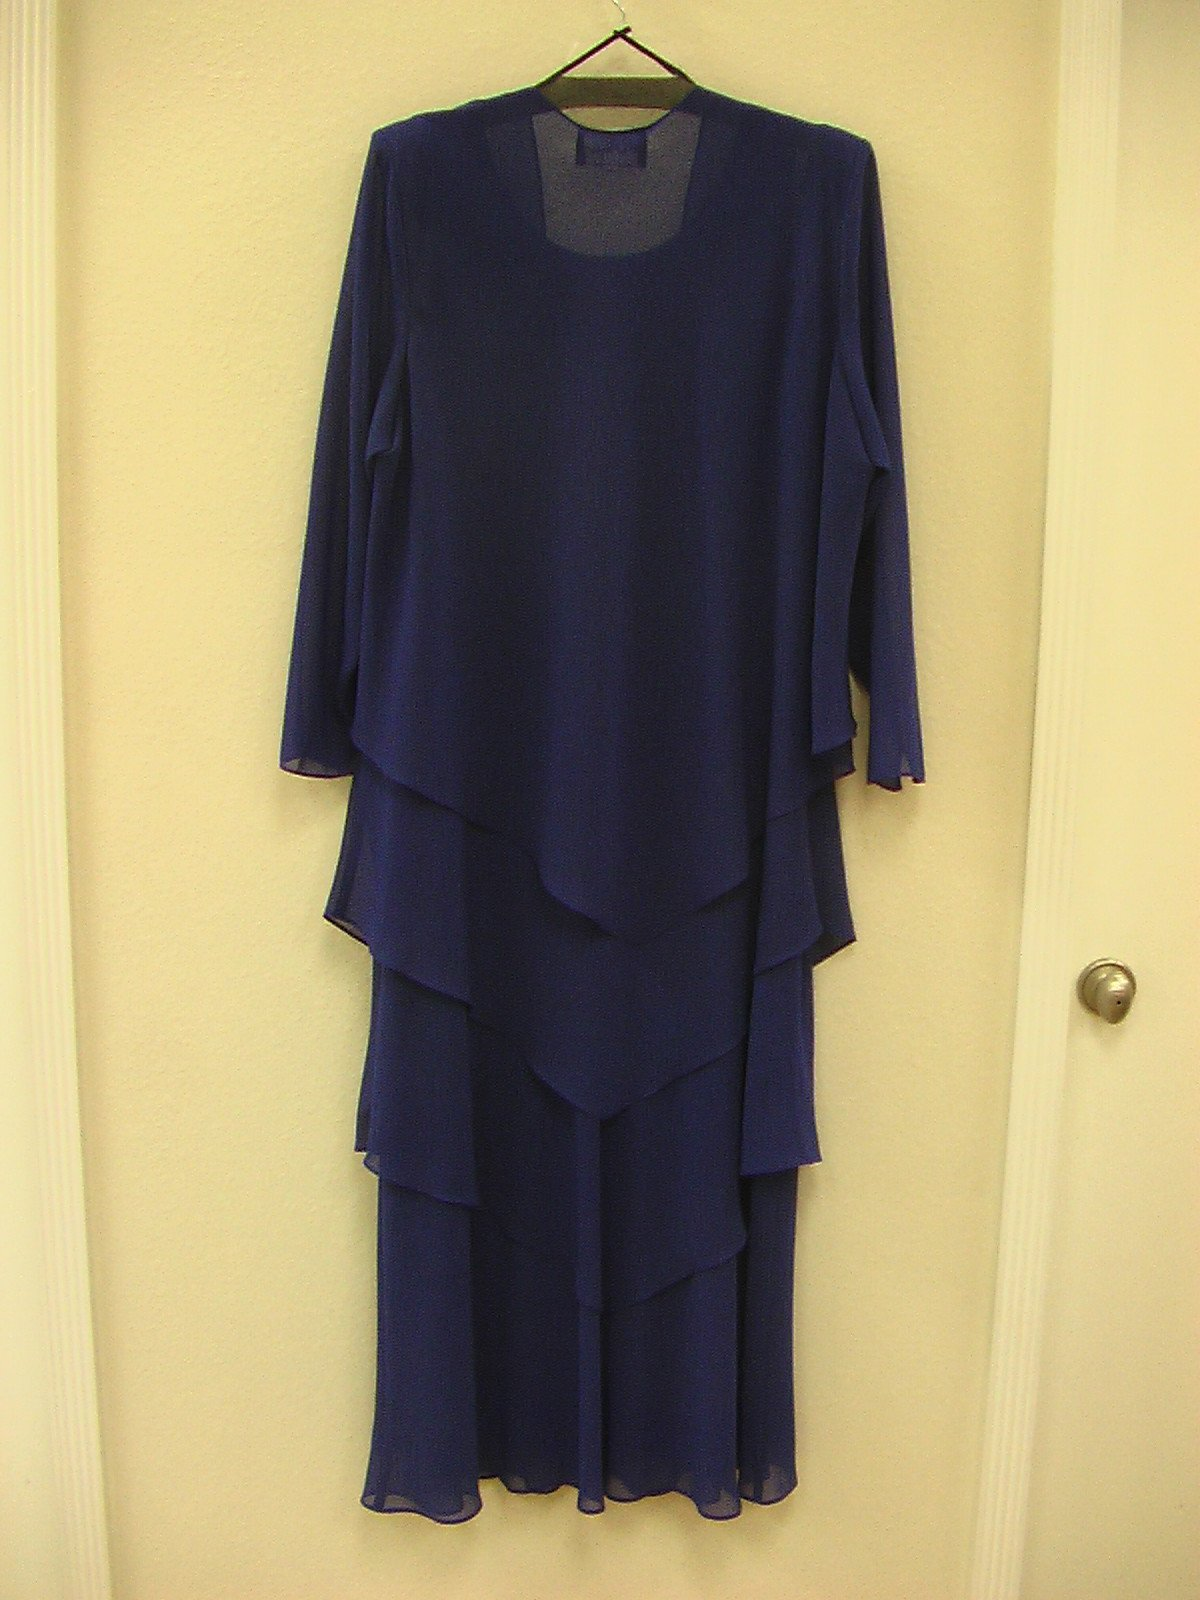 Ursula 62509 Cobalt size 22W In Stock Mothers Dress Plus Size - Tom's Bridal